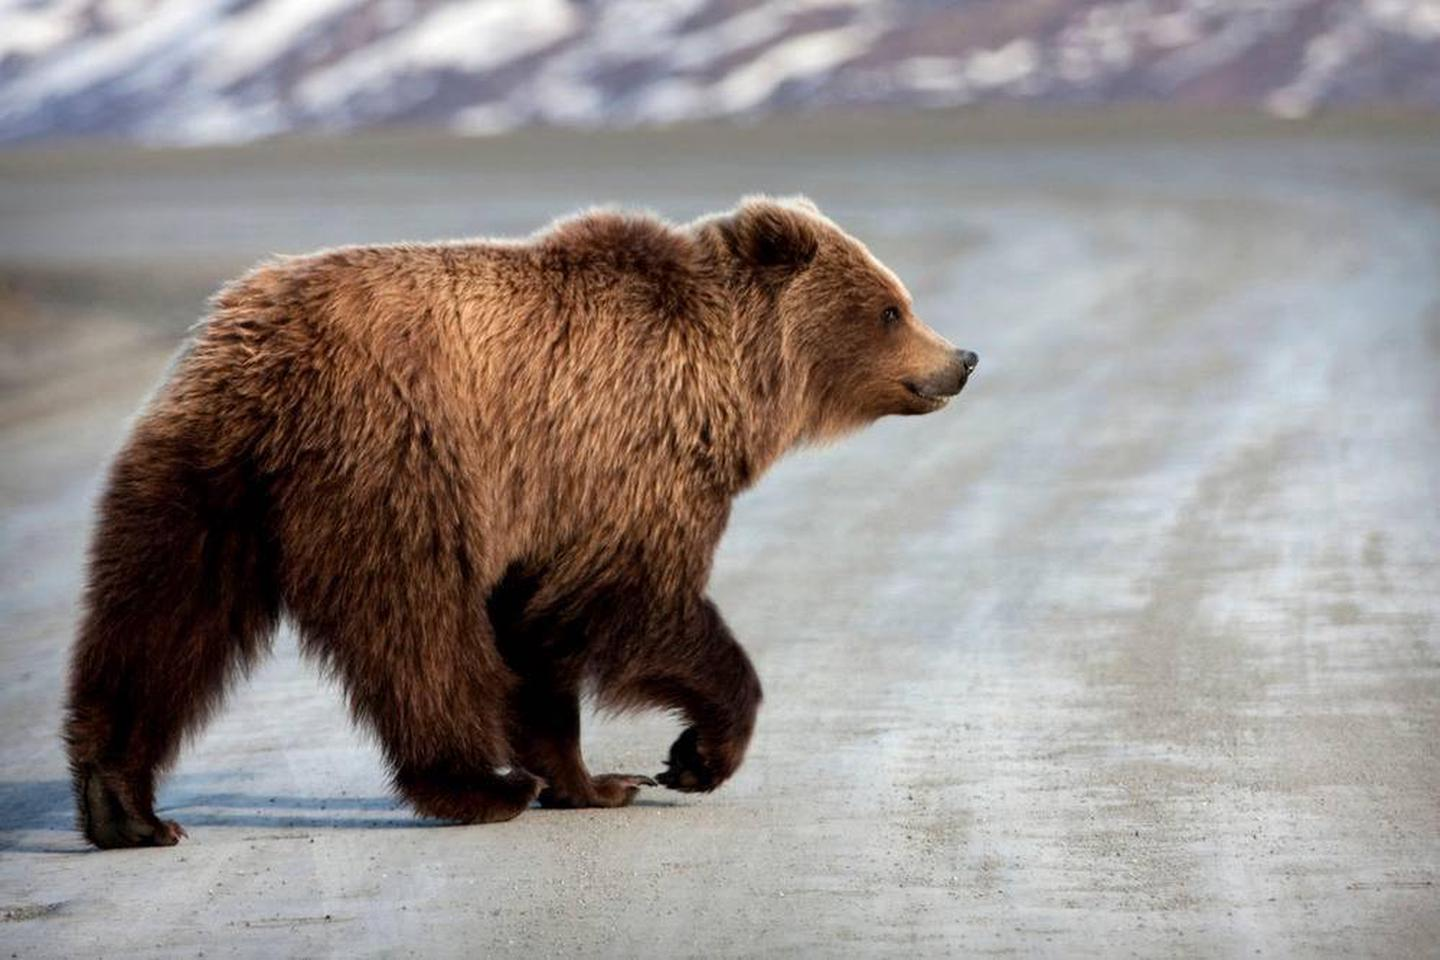 a grizzly bear walking down a dirt roadAnimals use the park road as well--be sure to give them plenty of space to avoid altering their behavior as they search for food during the short Alaskan summer.